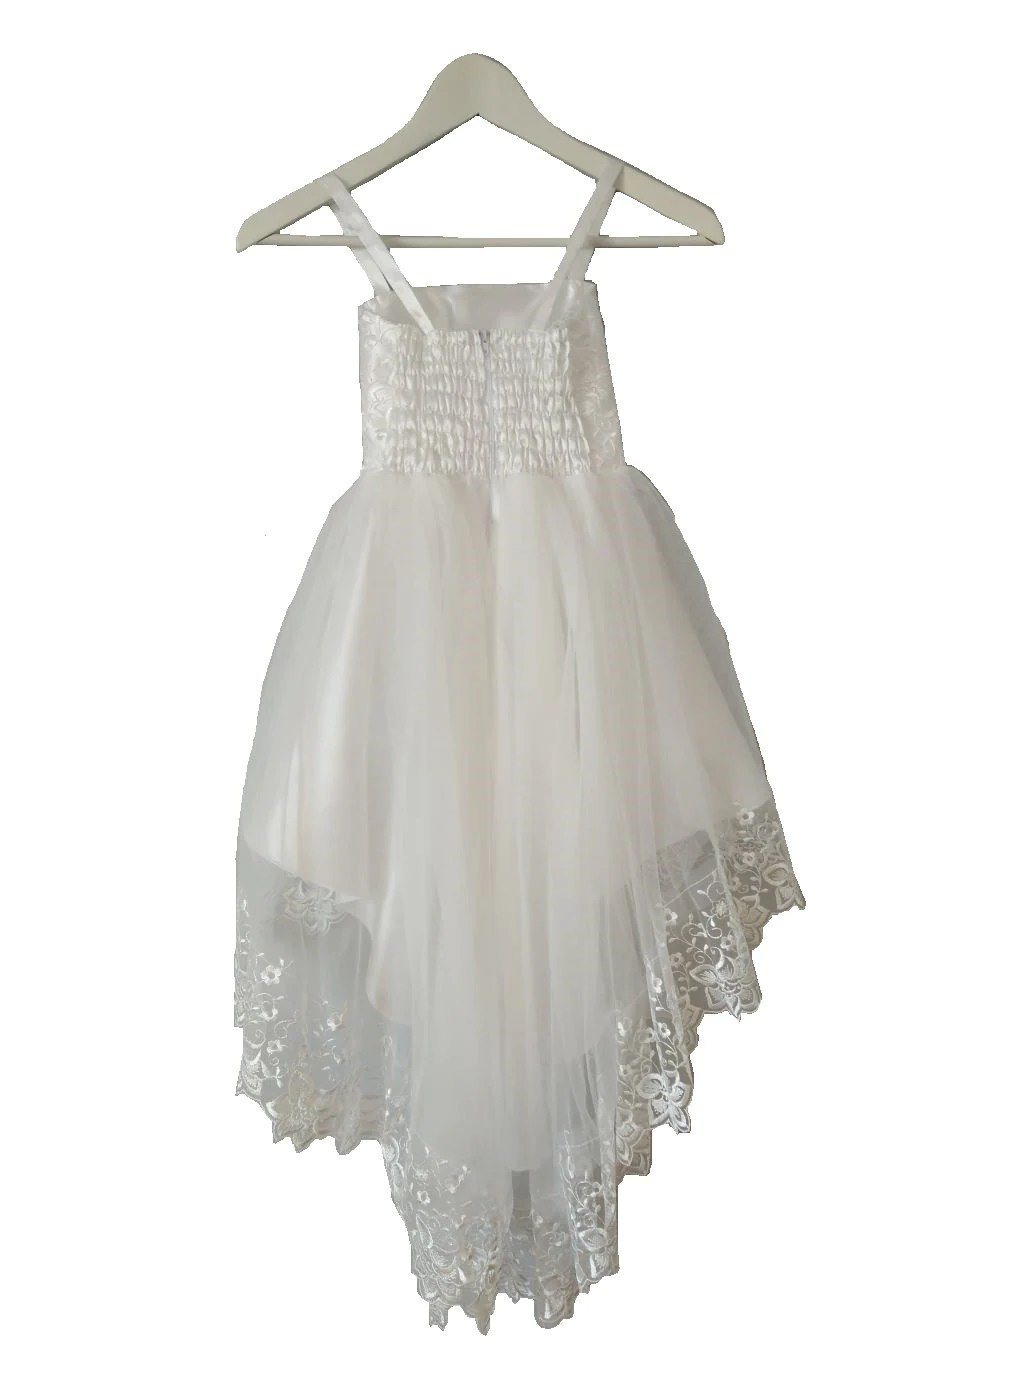 Christening Gown With Asymmetric White Lace And Tulle Skirt